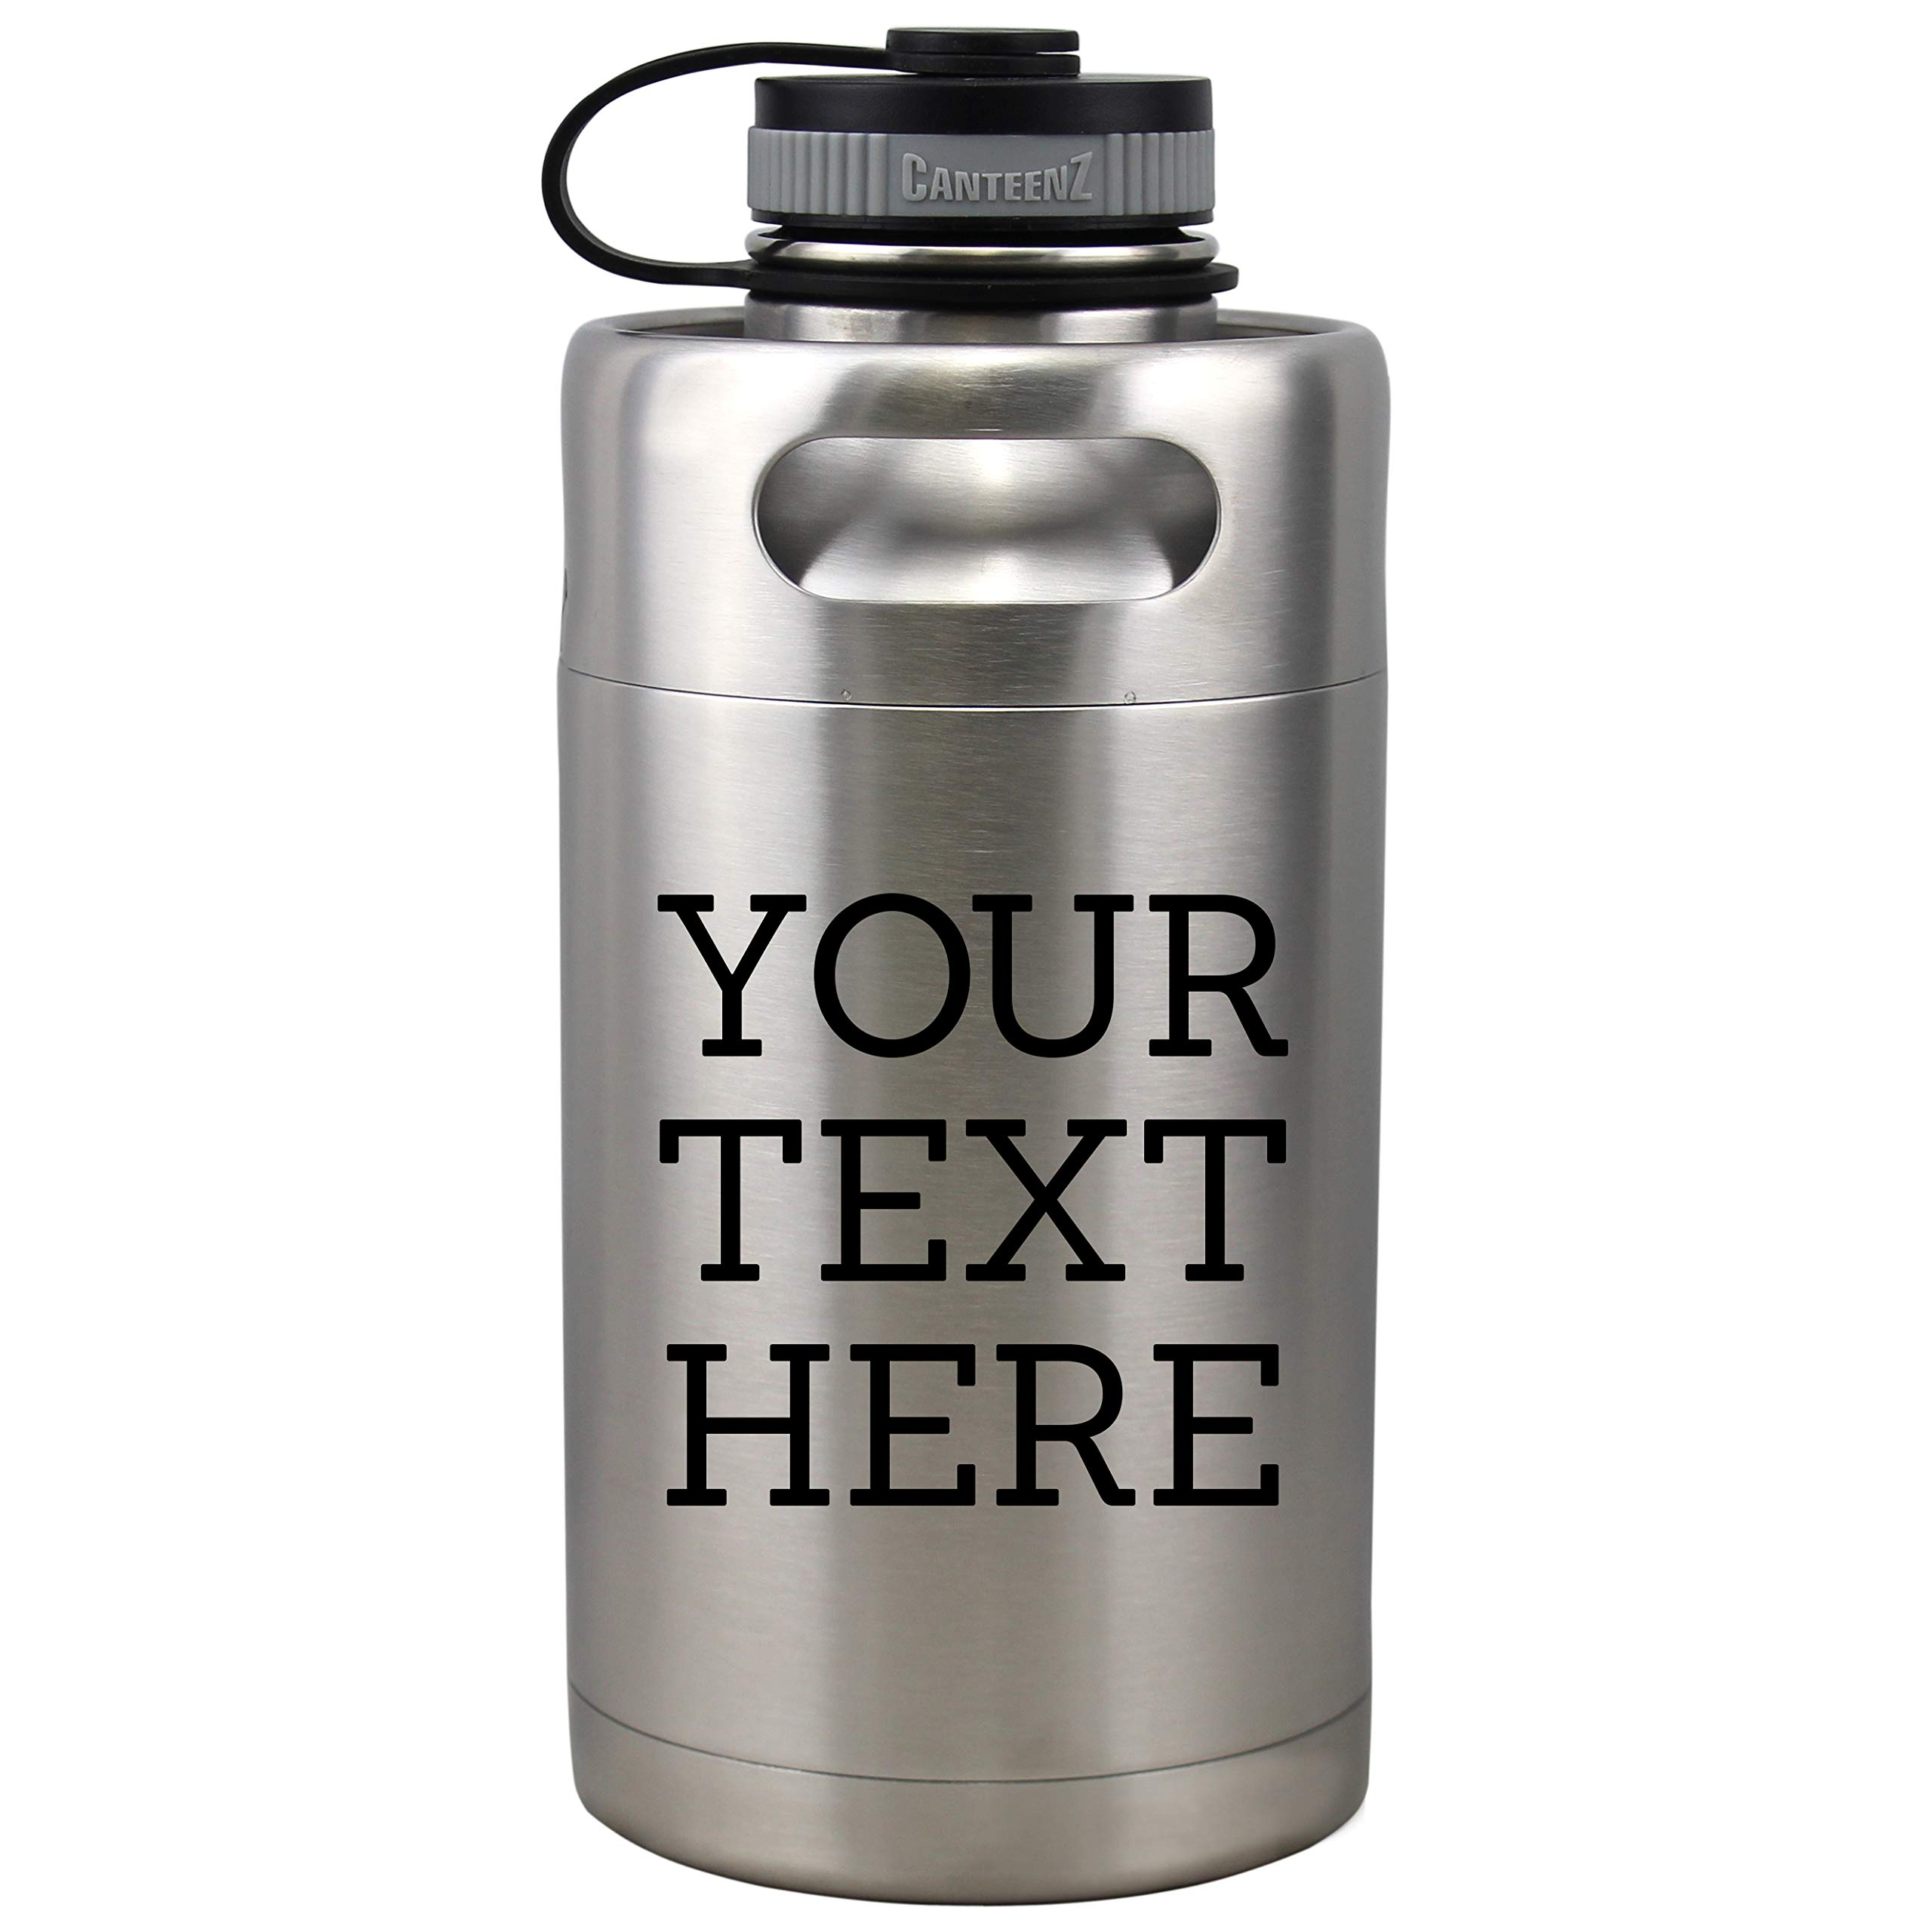 Personalized Etched Custom Message Insulated Beer Growler 64oz Keg (Stainless Steel)